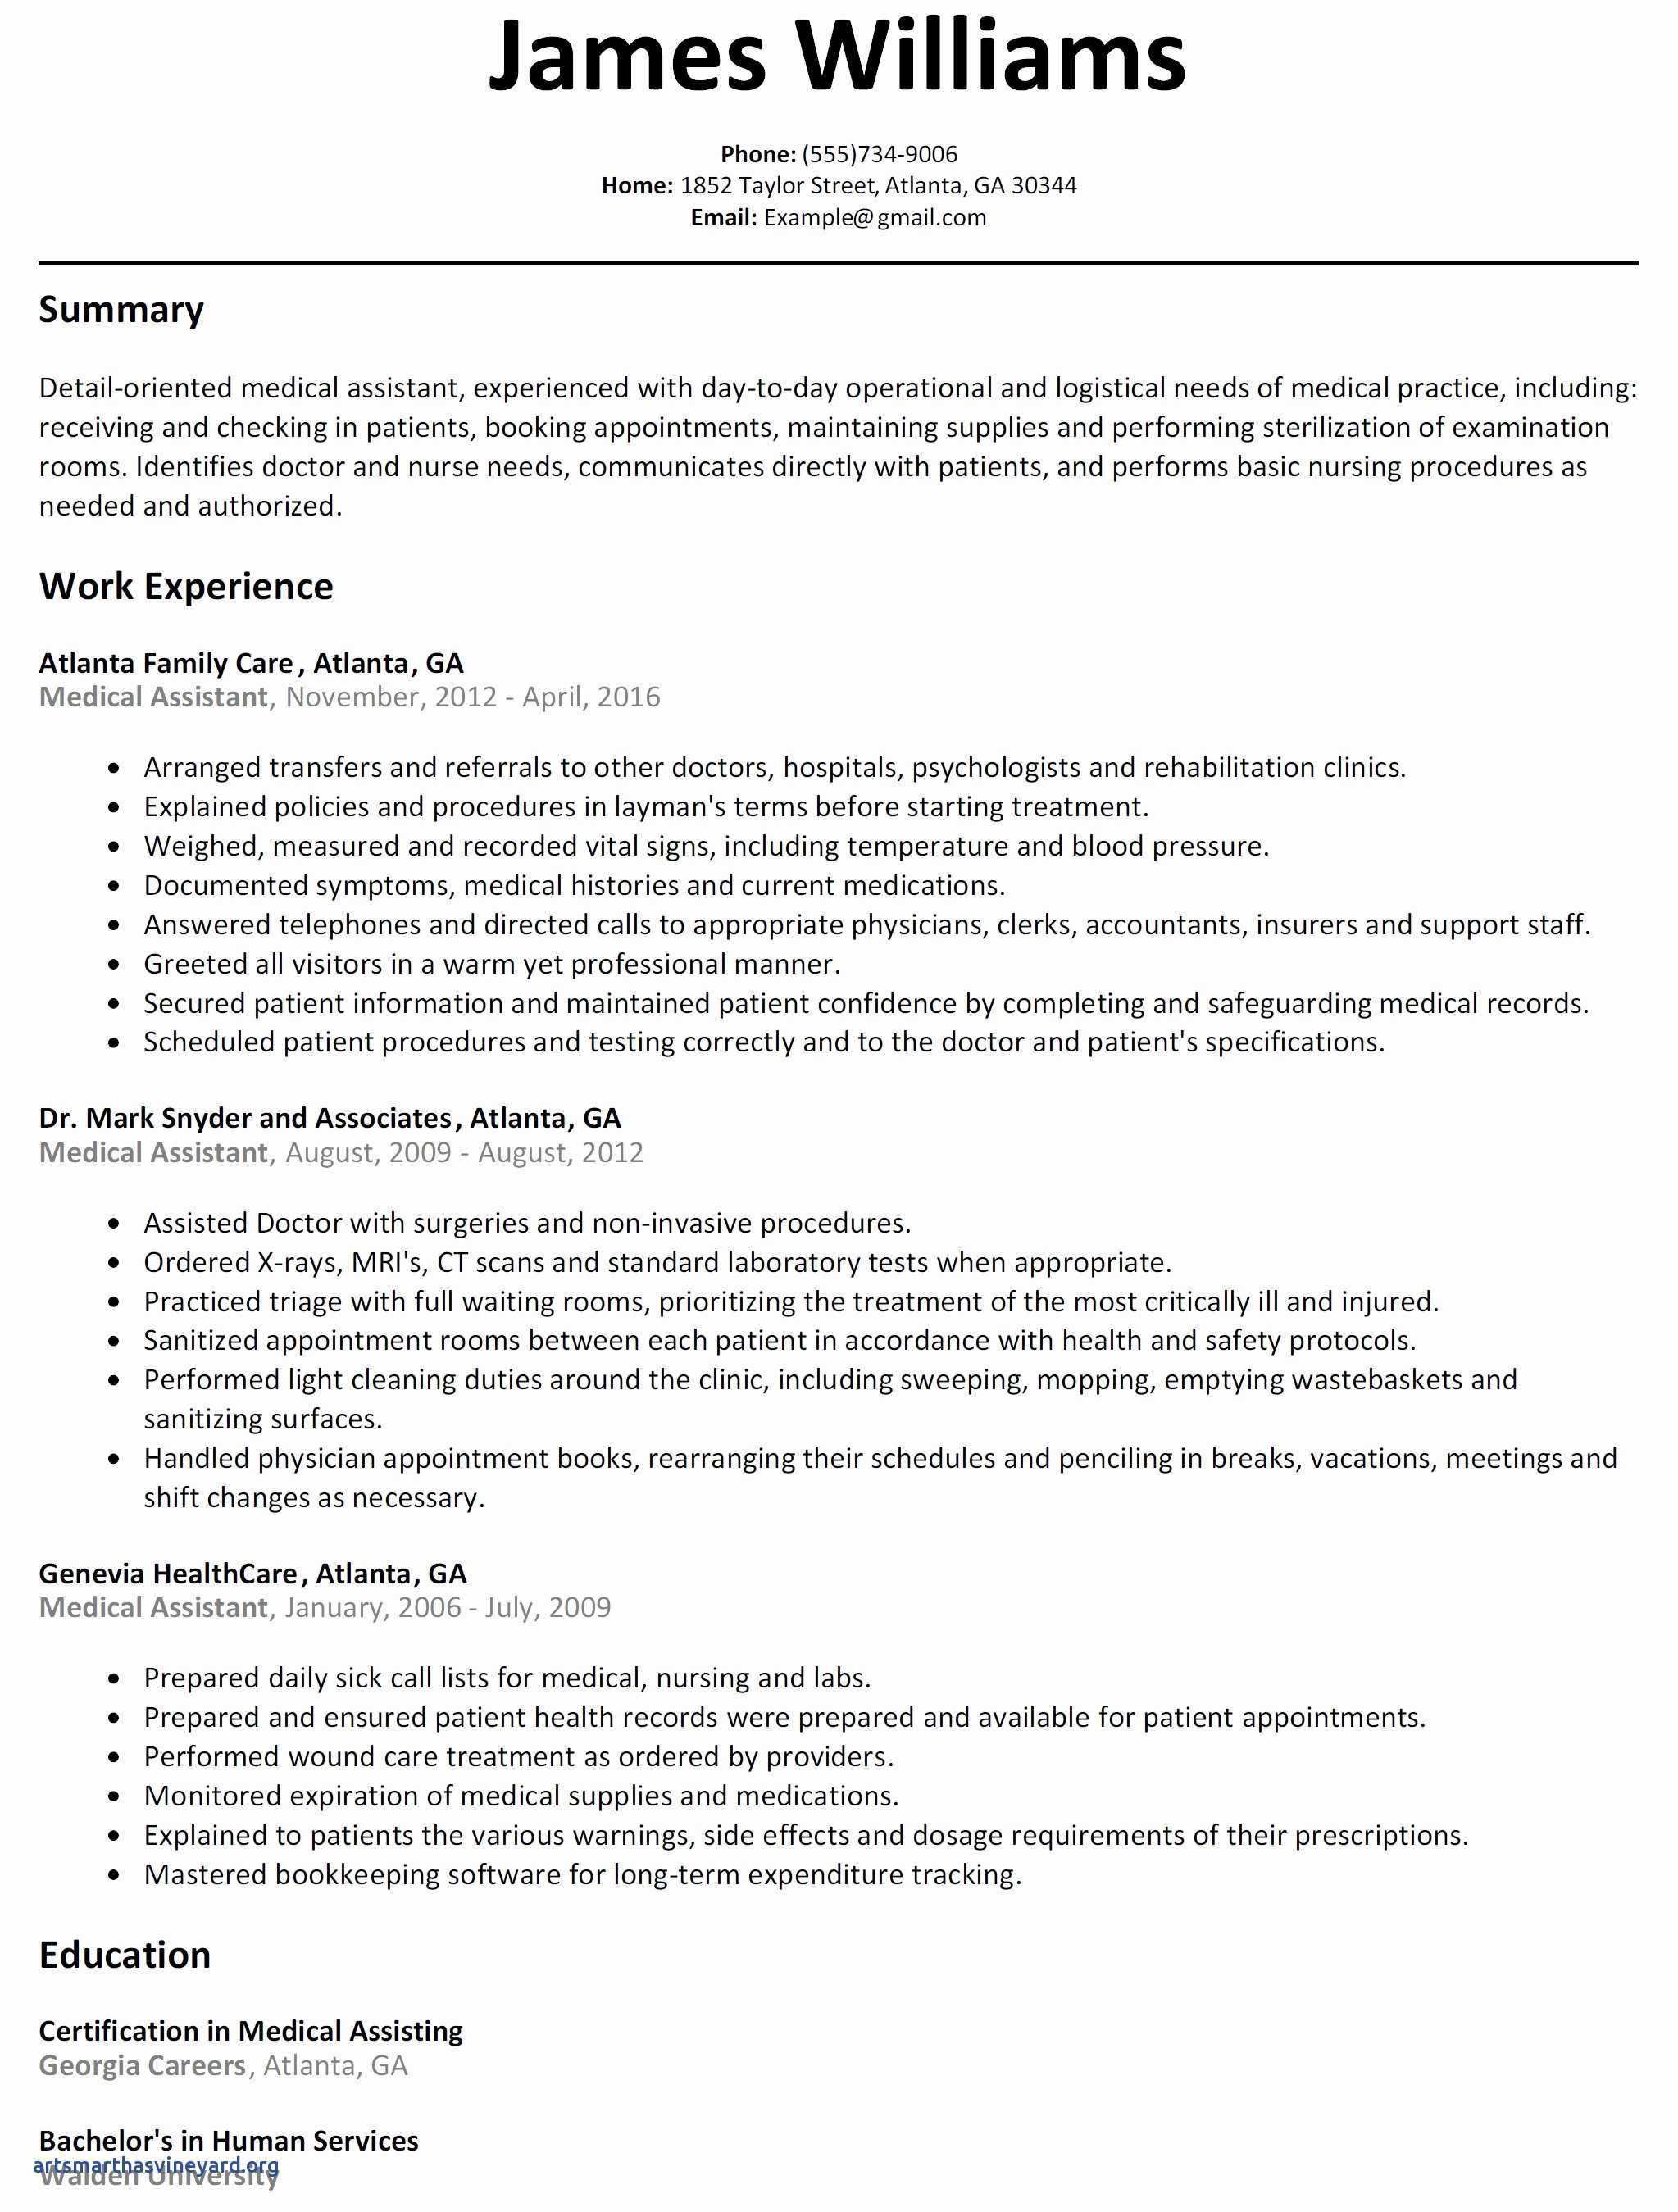 nursing school resume Collection-Nursing School Resume 23 Nursing School Resume 4-h